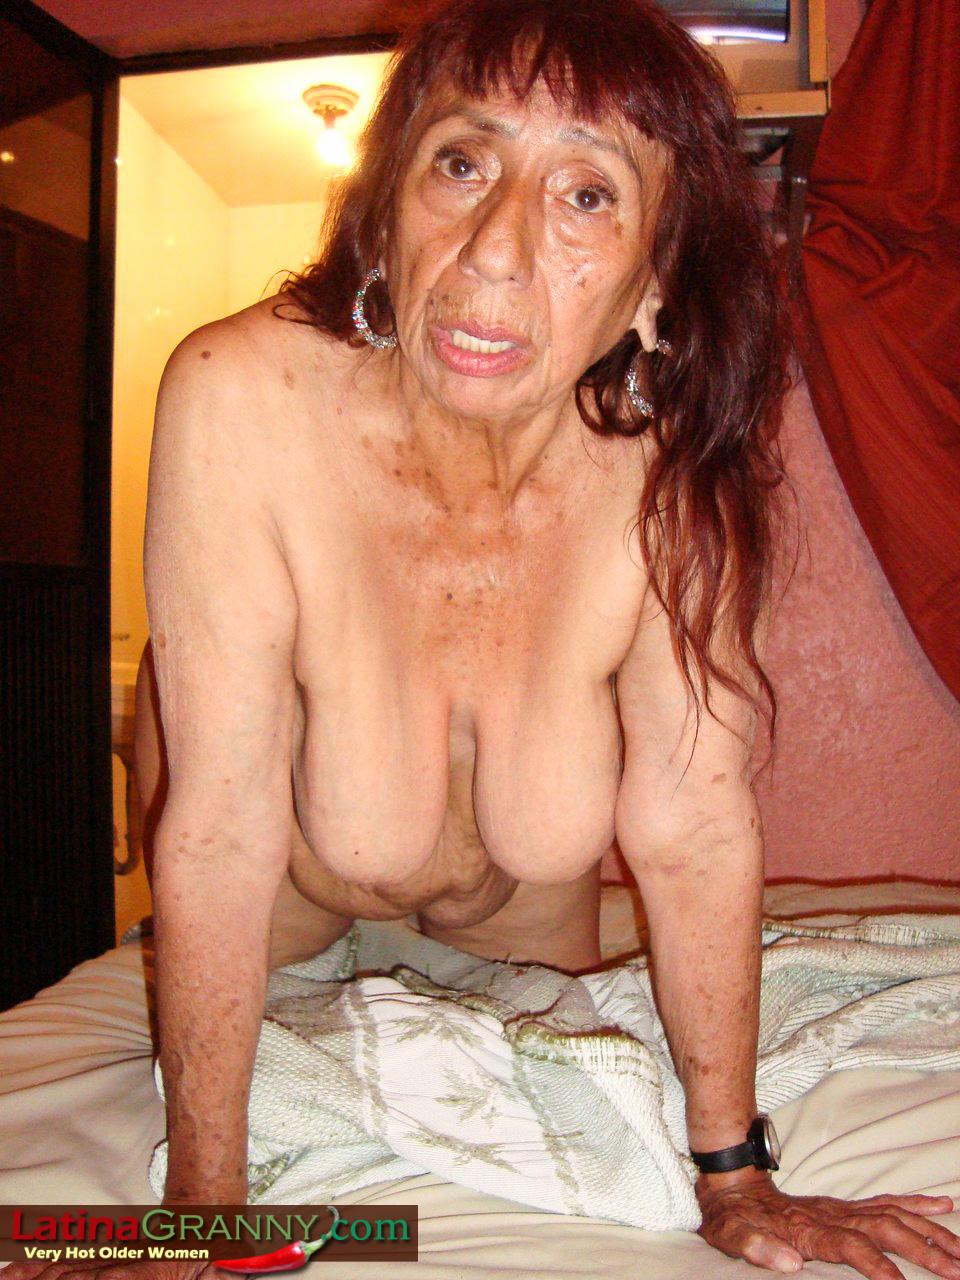 Latino granny porn very old think, that